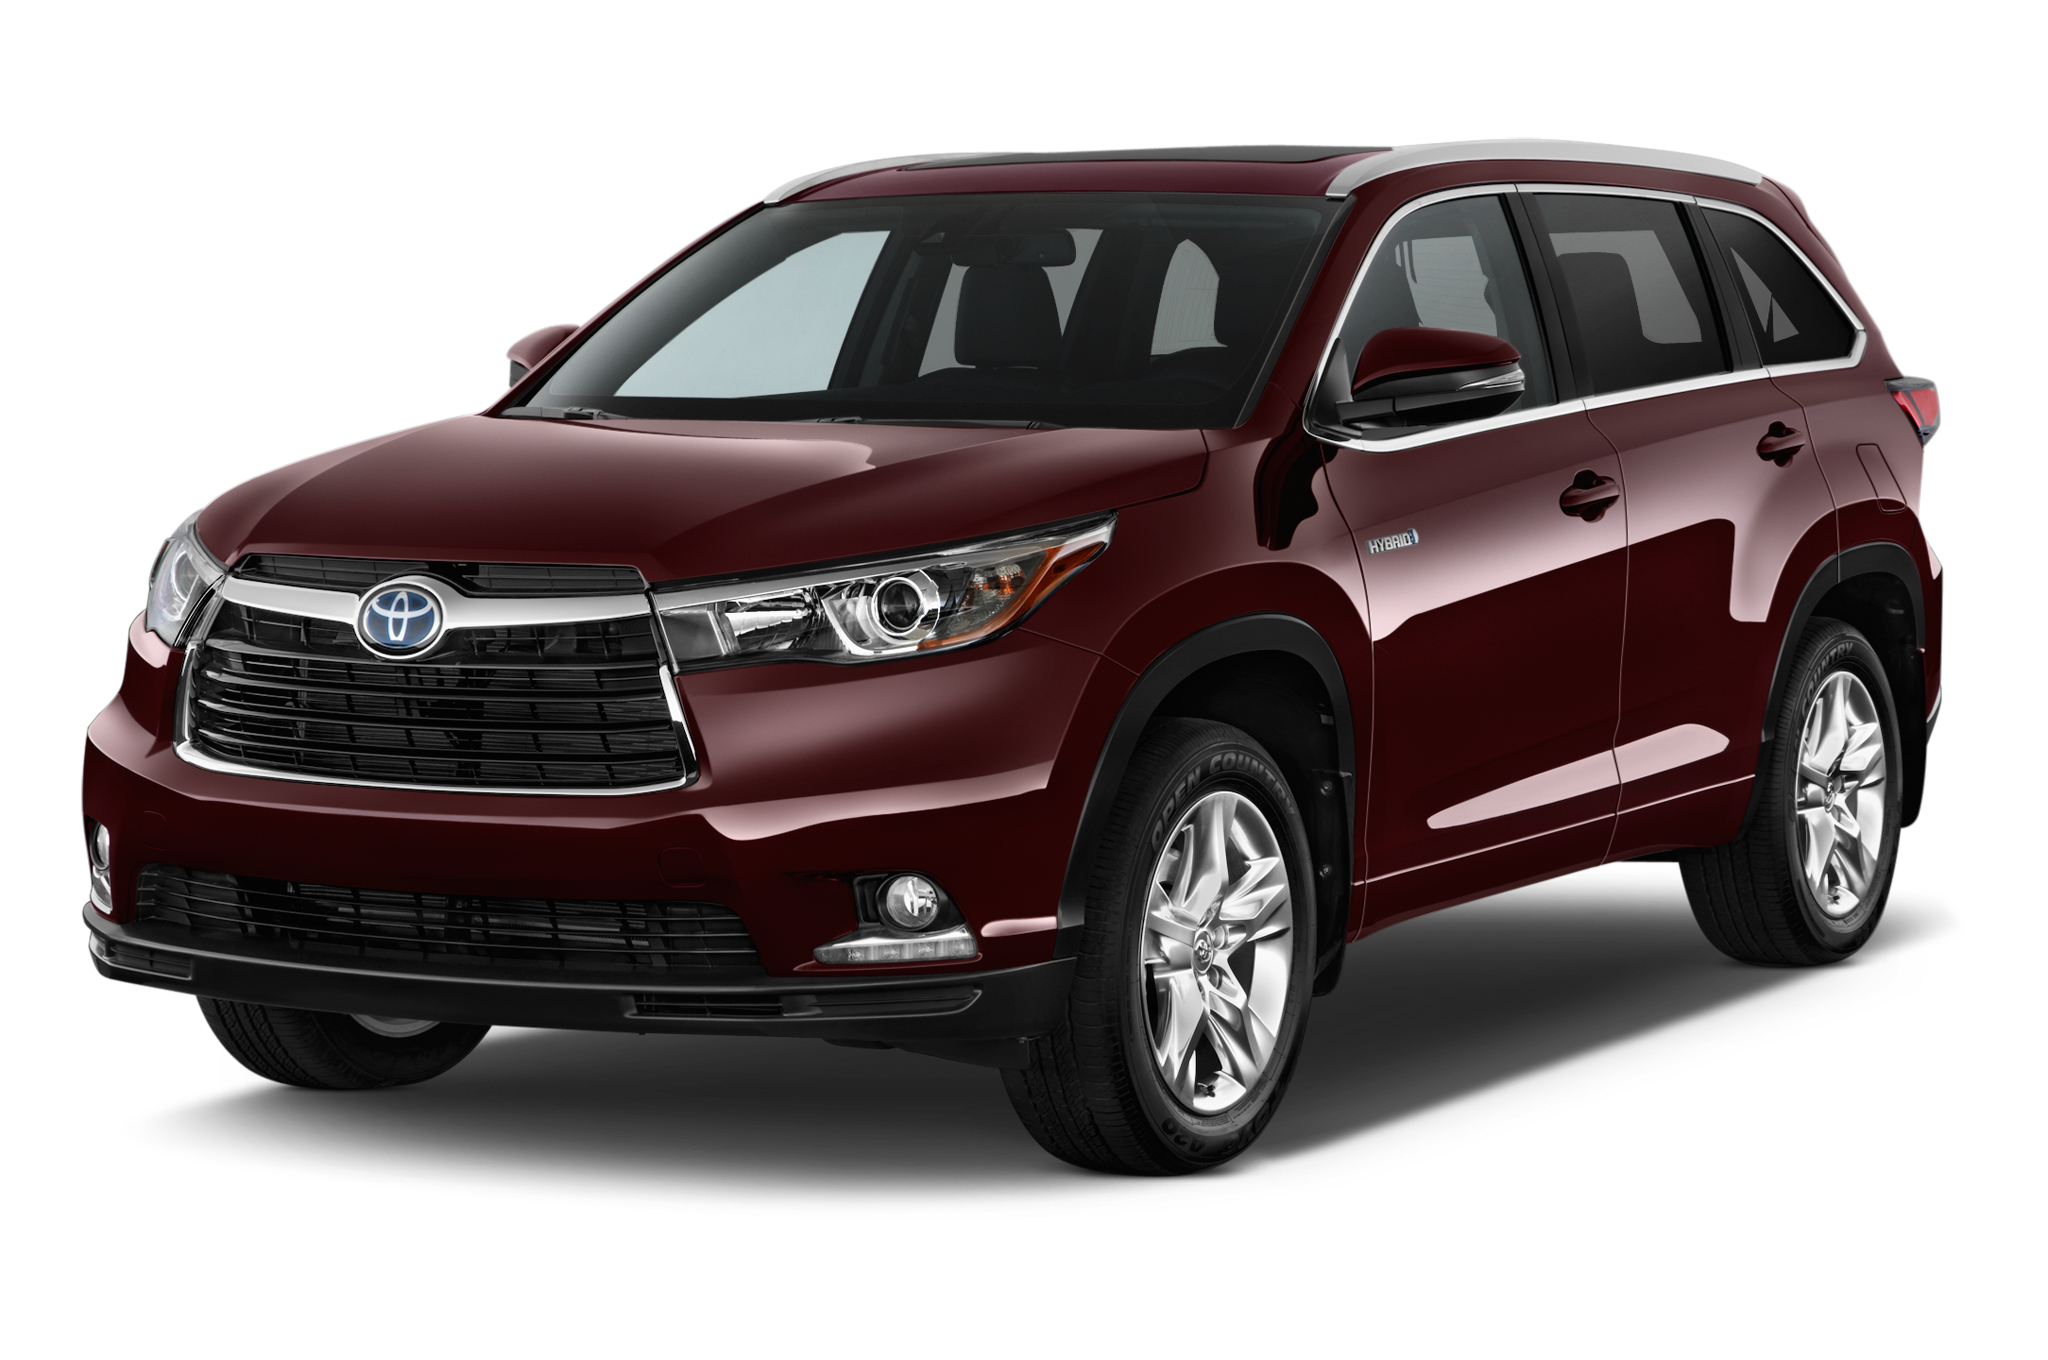 photo wheel hybrid highlander all new safety drive price suv le photos reviews toyota